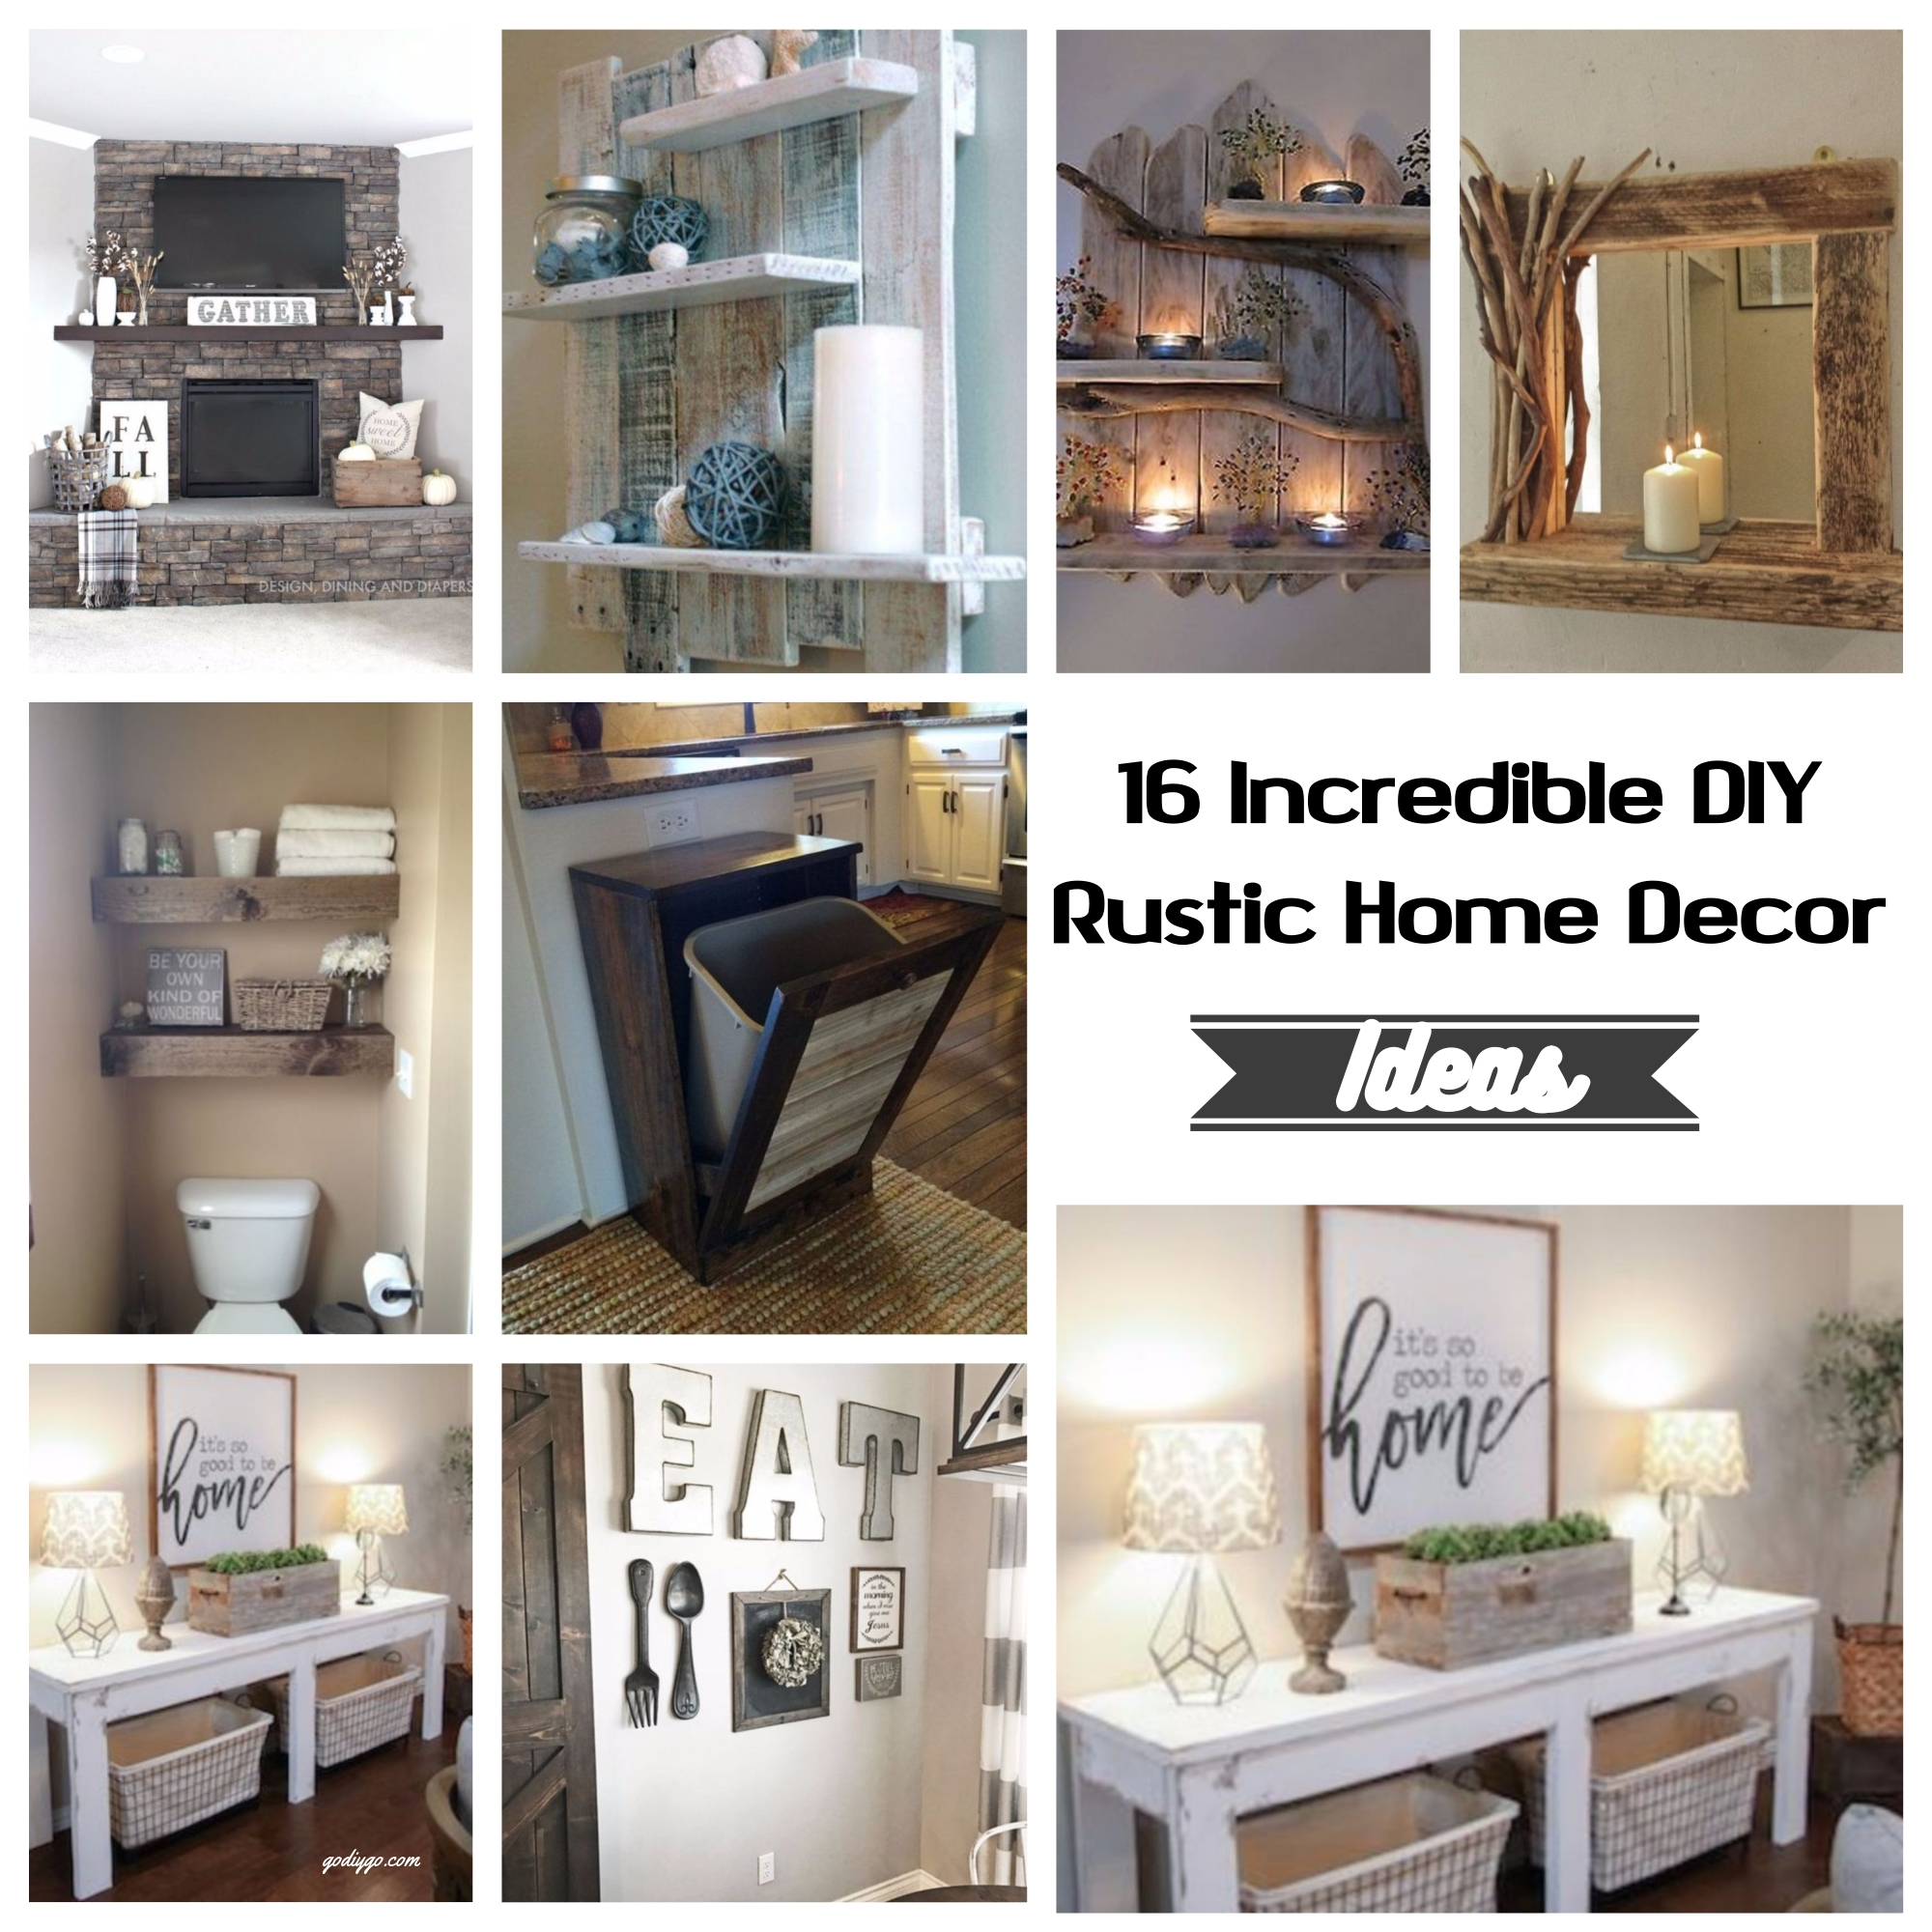 Home Decor Websites For Cheap: 16 Incredible DIY Rustic Home Decor Ideas